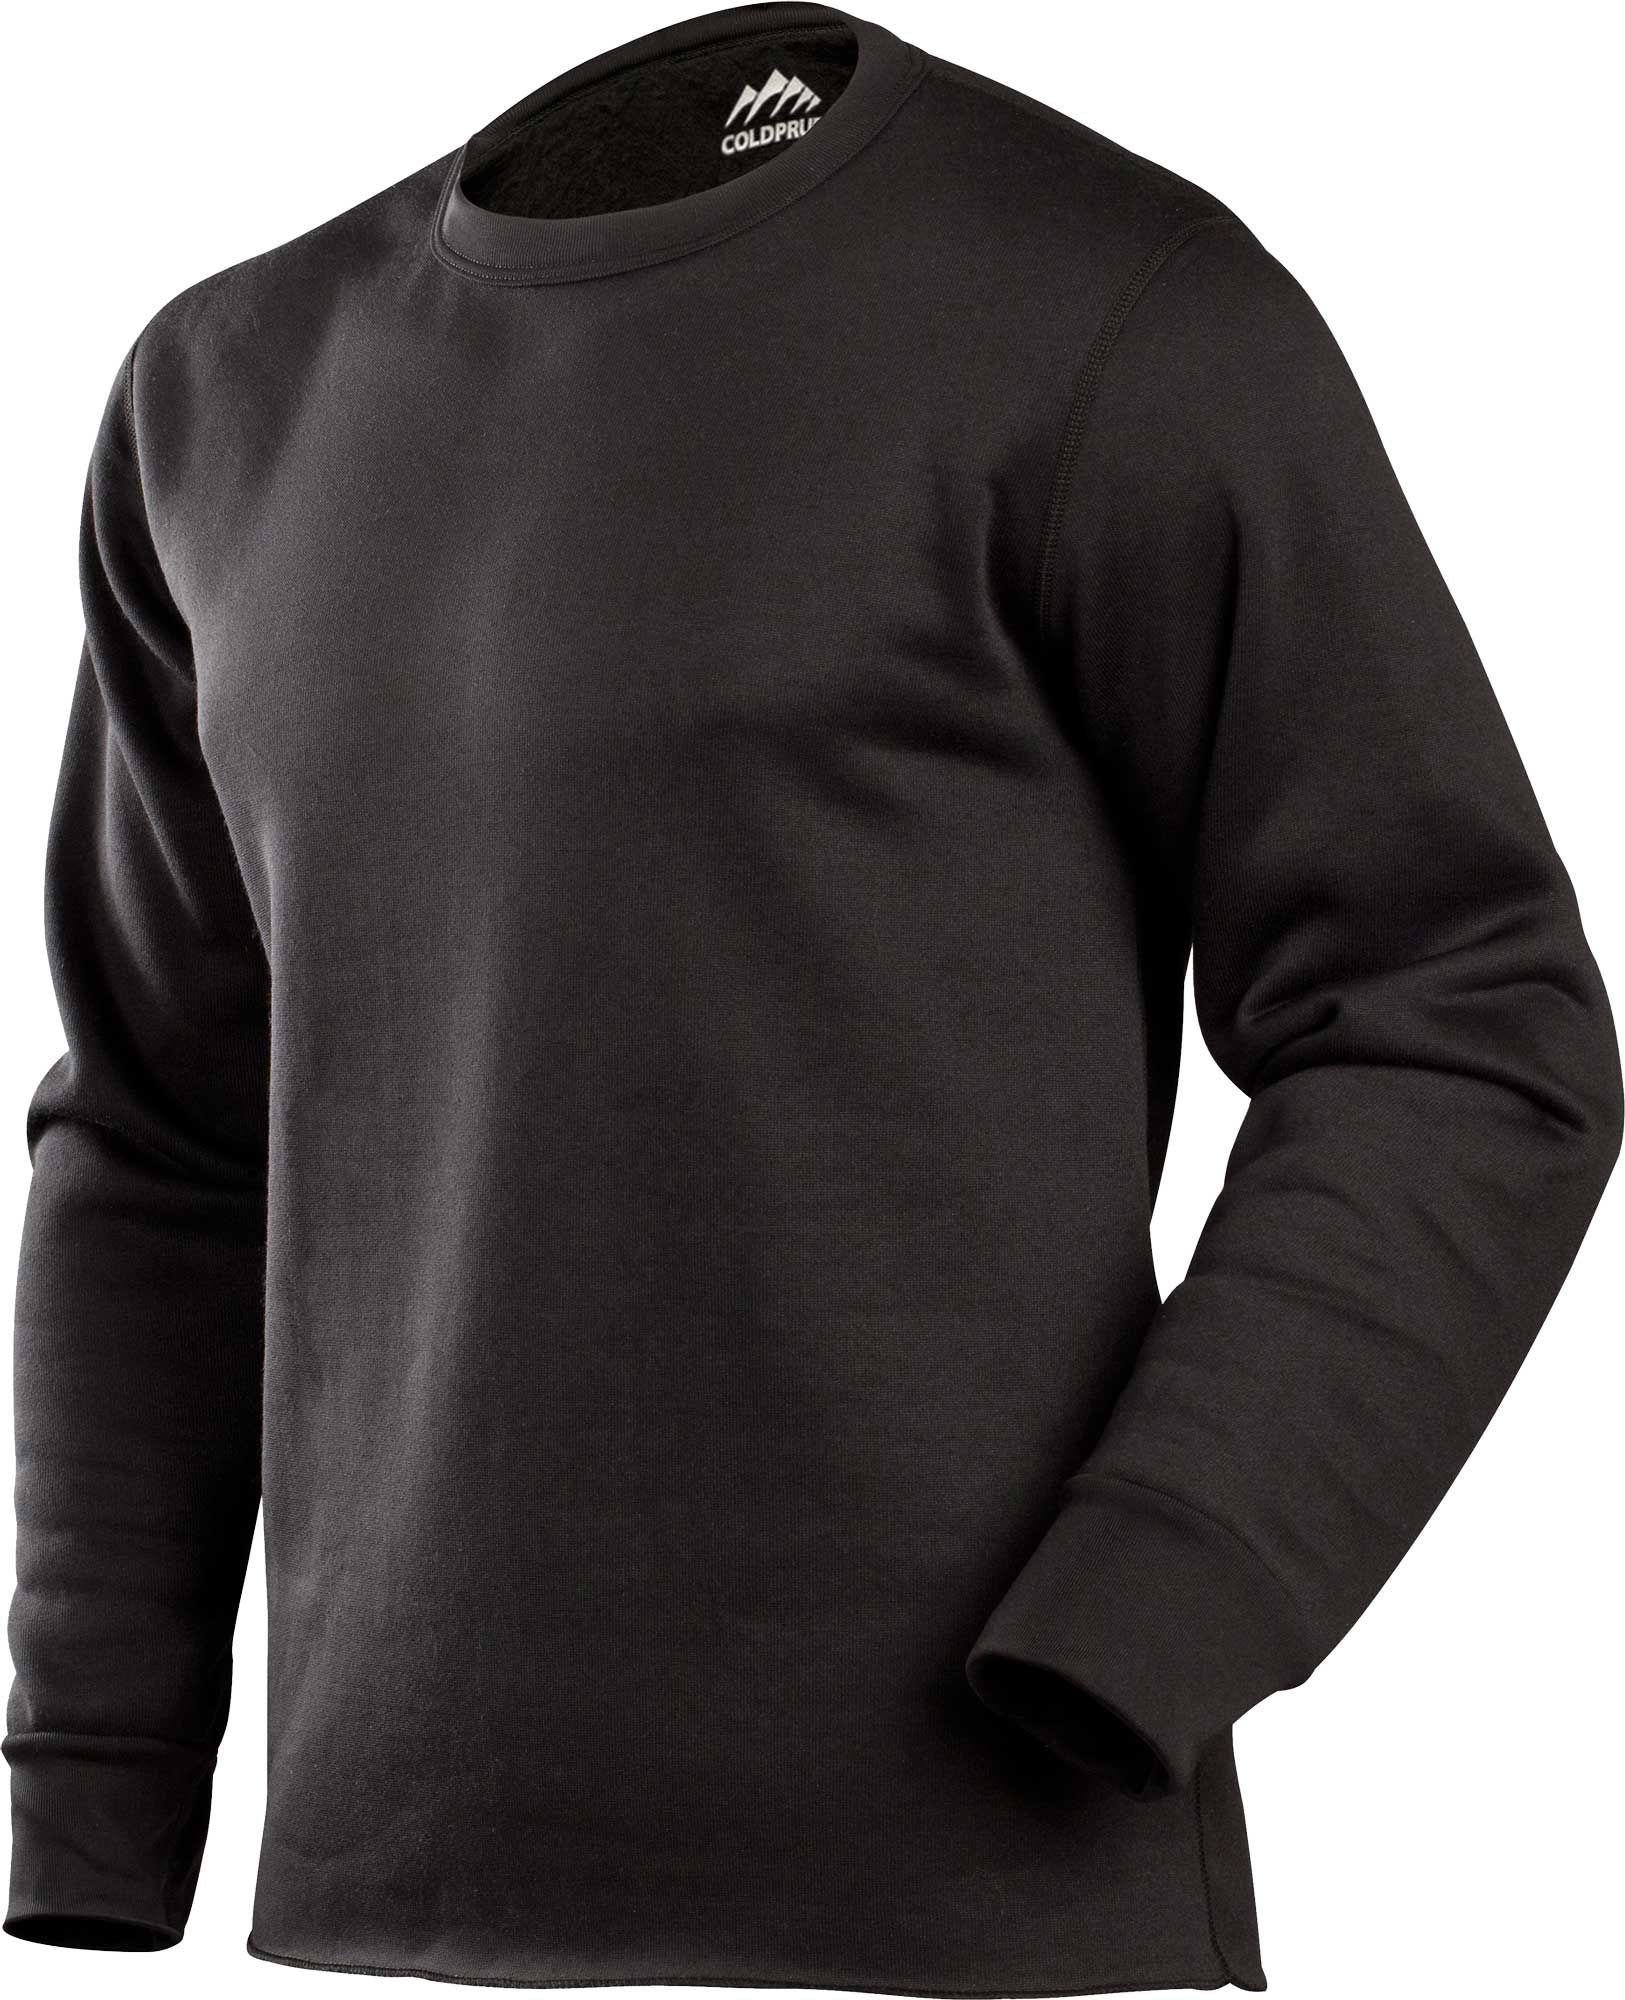 ColdPruf Men's Expedition Long Sleeve Crew Base Layer Shirt (Regular and Big & Tall), Size: Small, Black